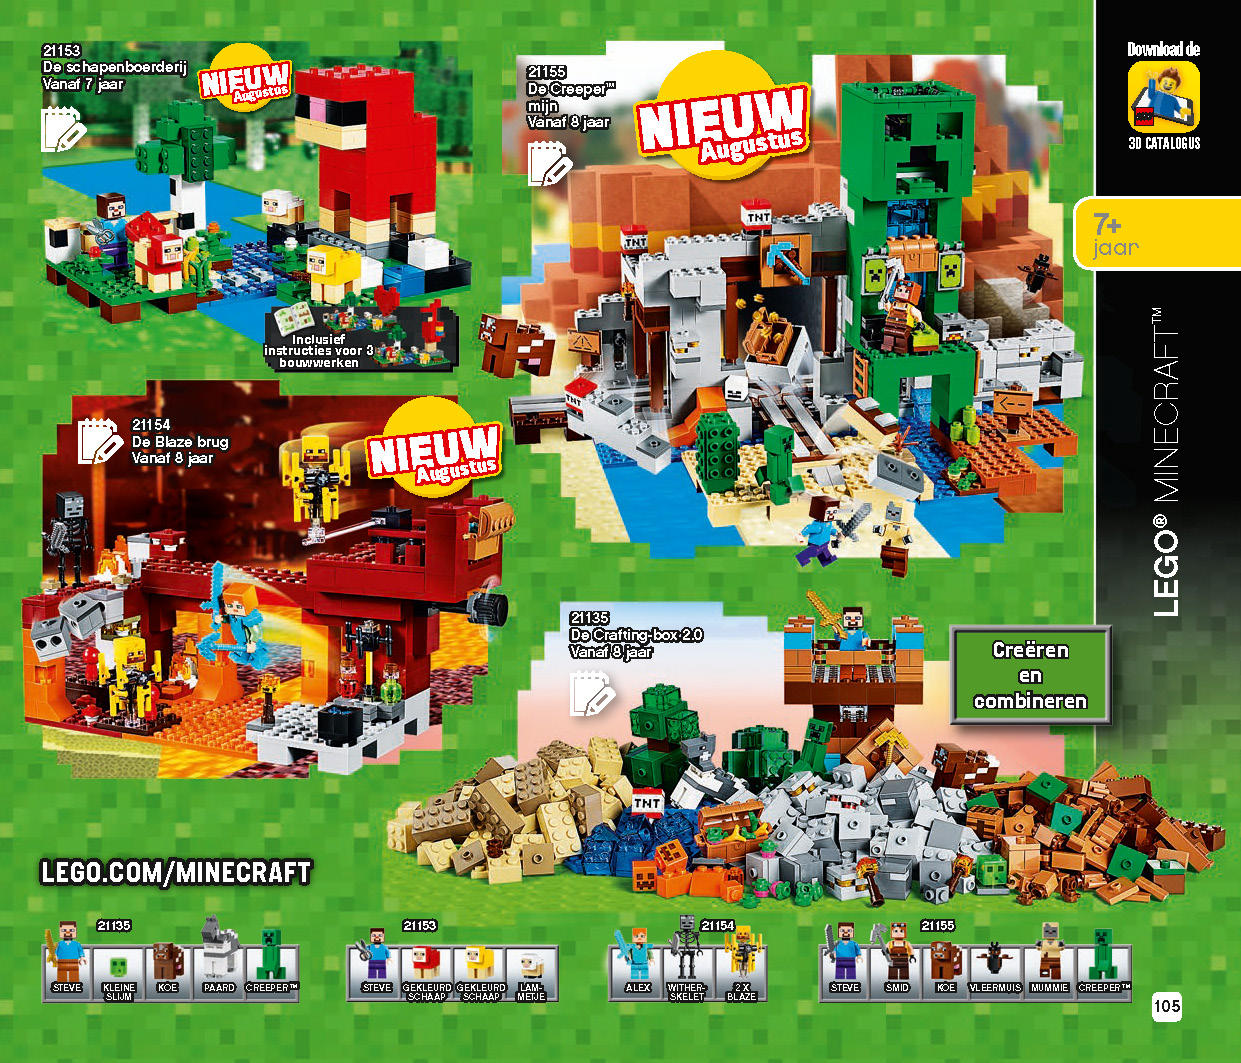 LEGO Catalog 2HY 2019 Minecraft | The Brothers Brick | The Brothers